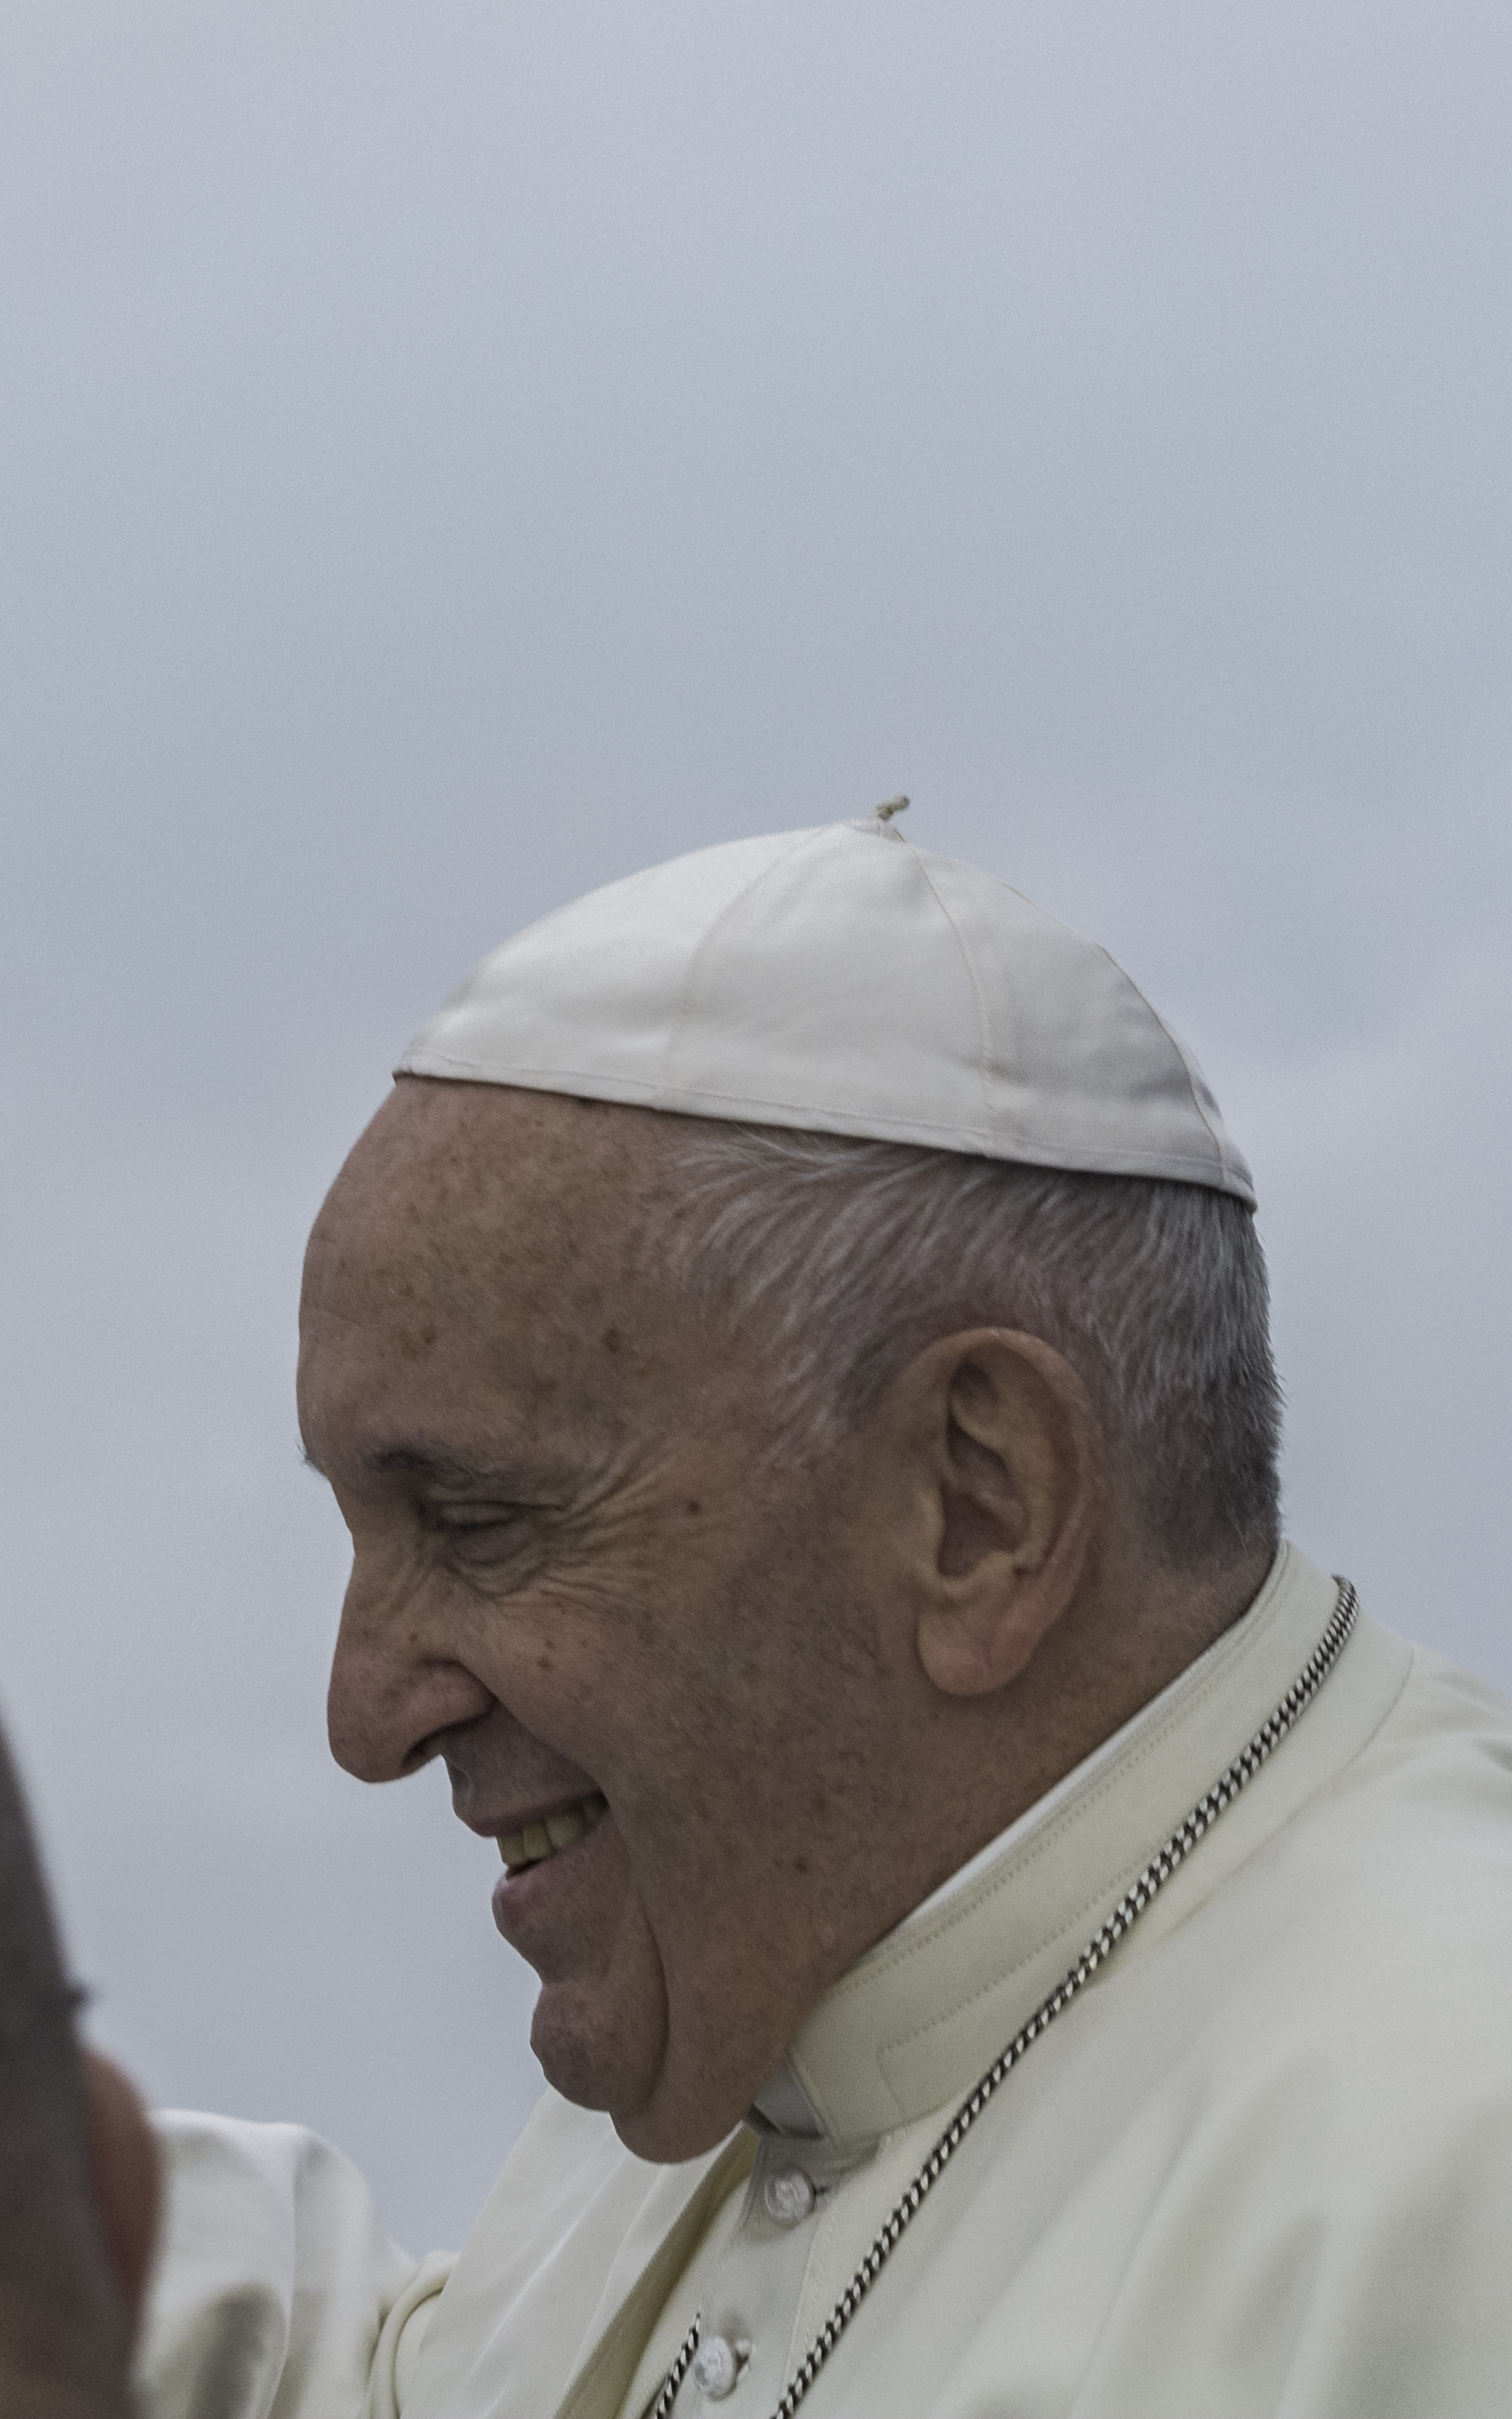 Pope Francis has arrived